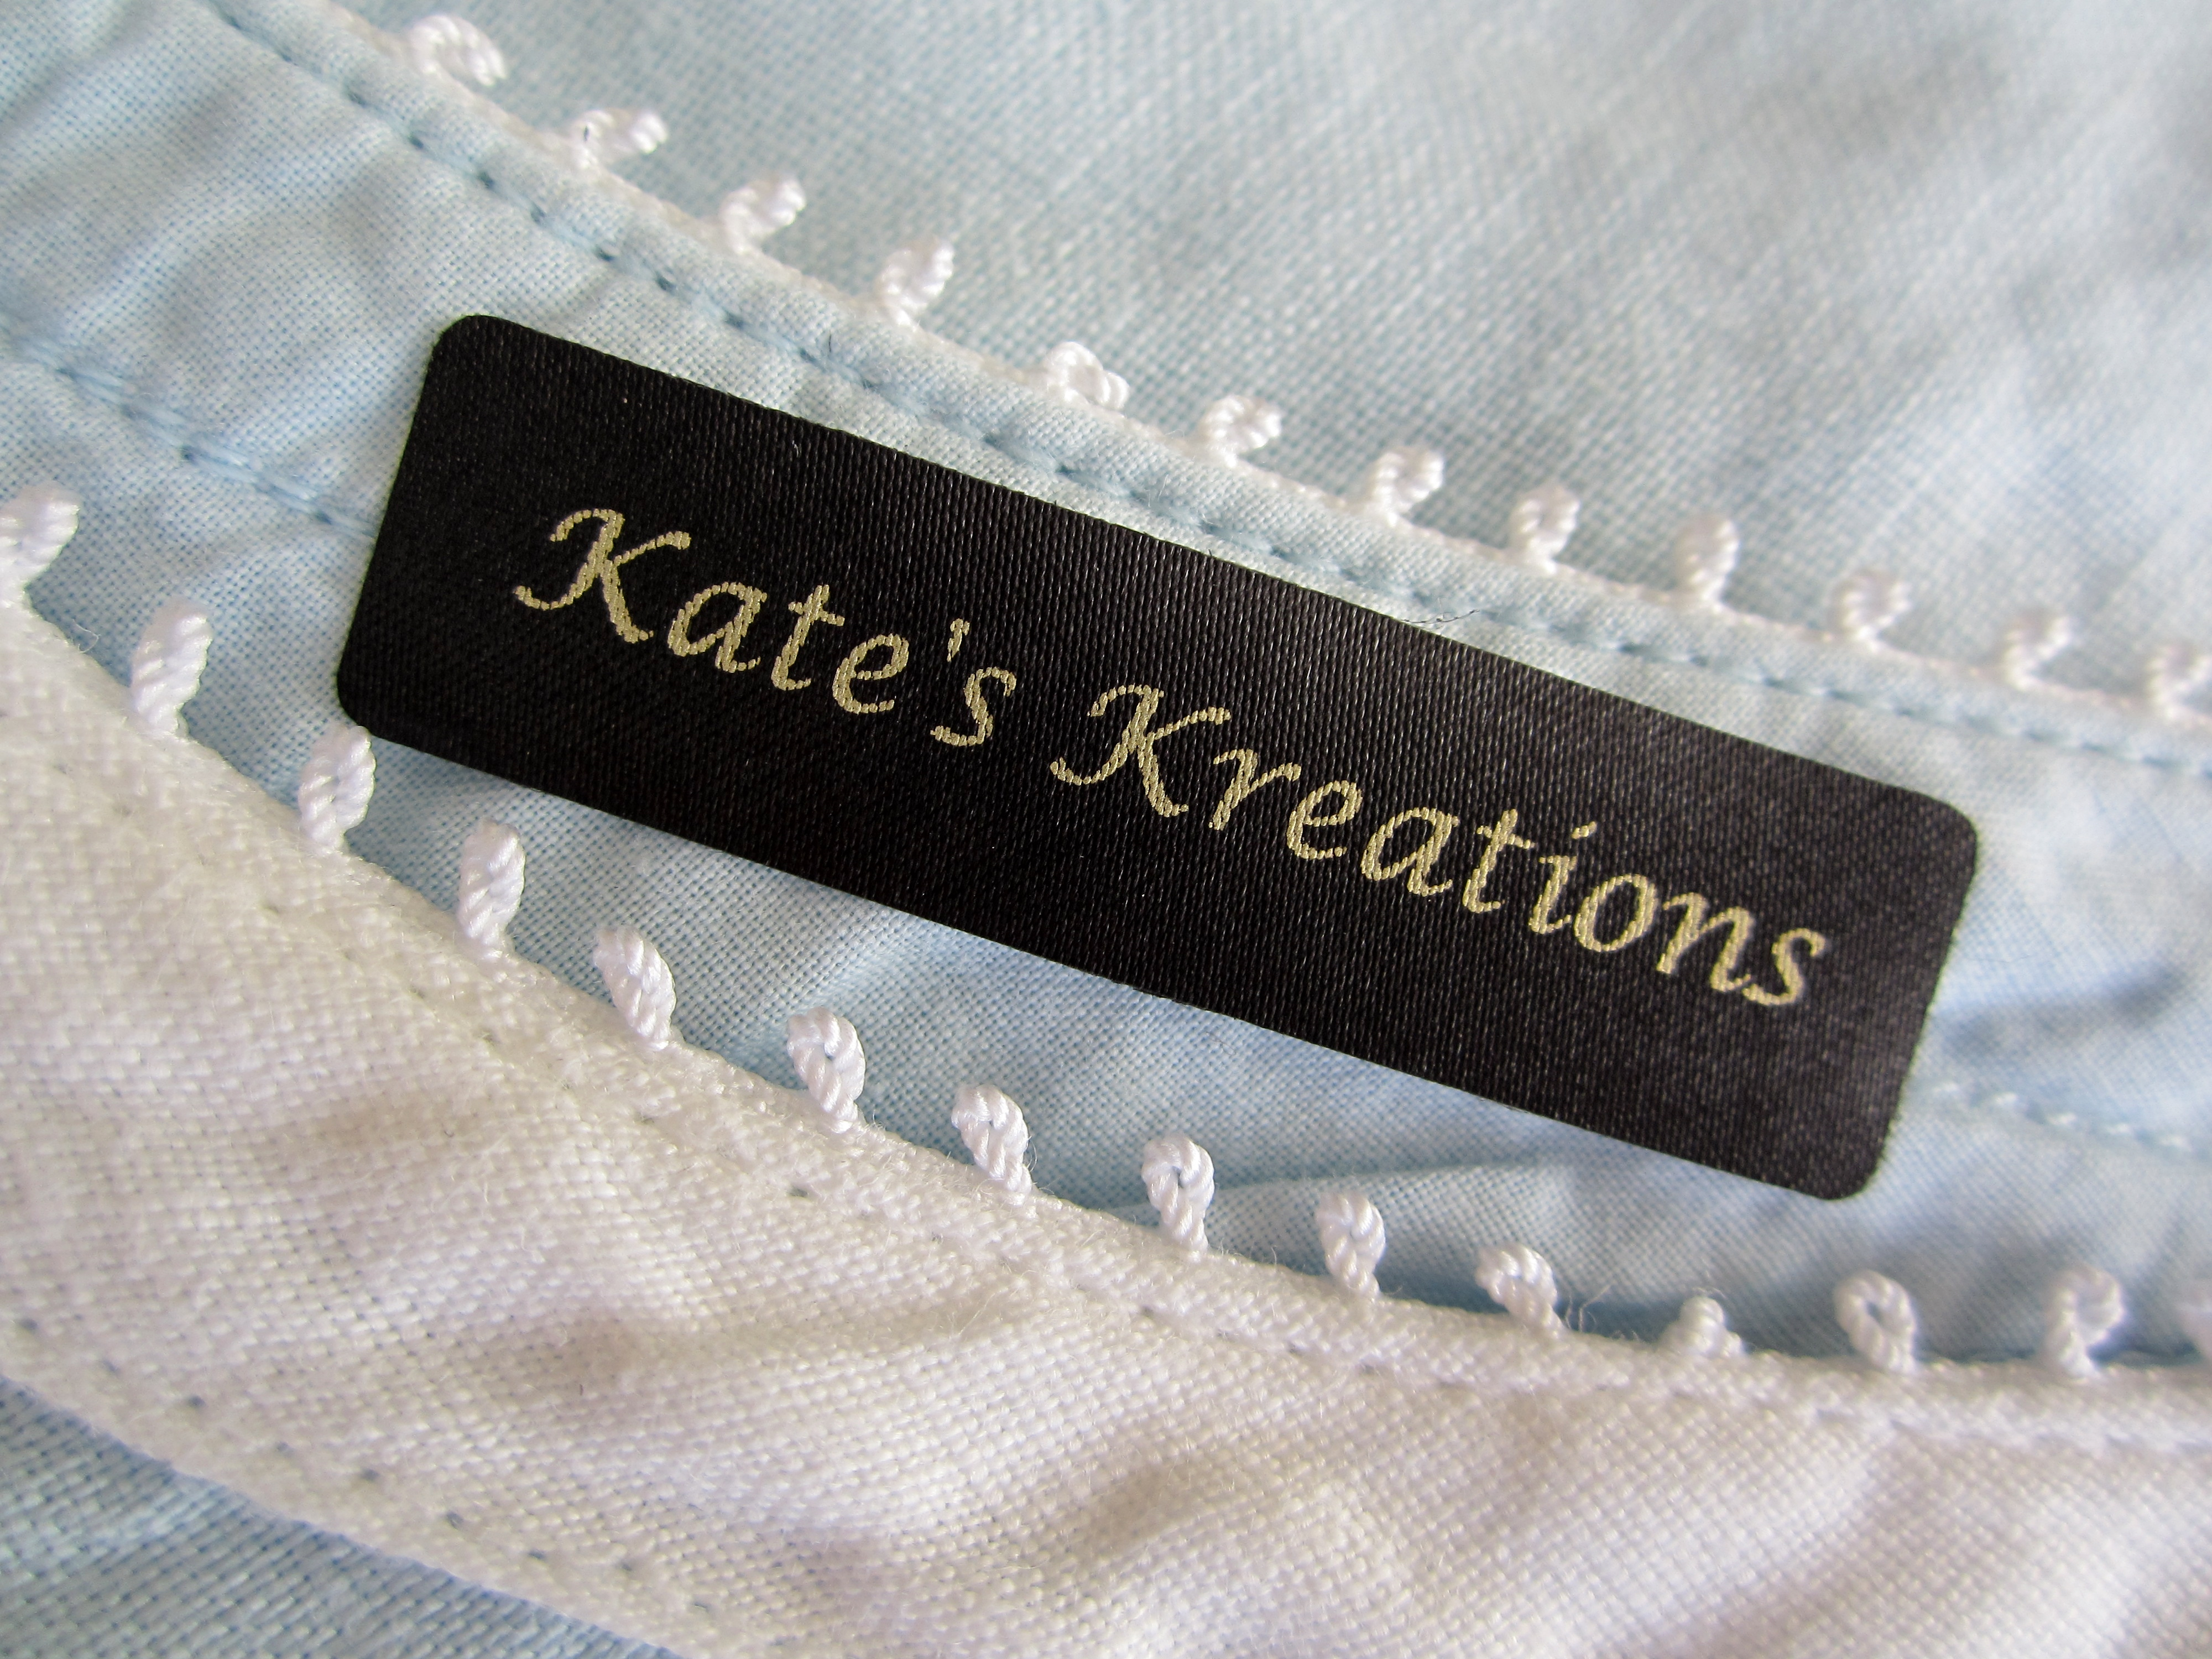 Iron On Iron On Labels For Clothing Iron On Fabric Labels